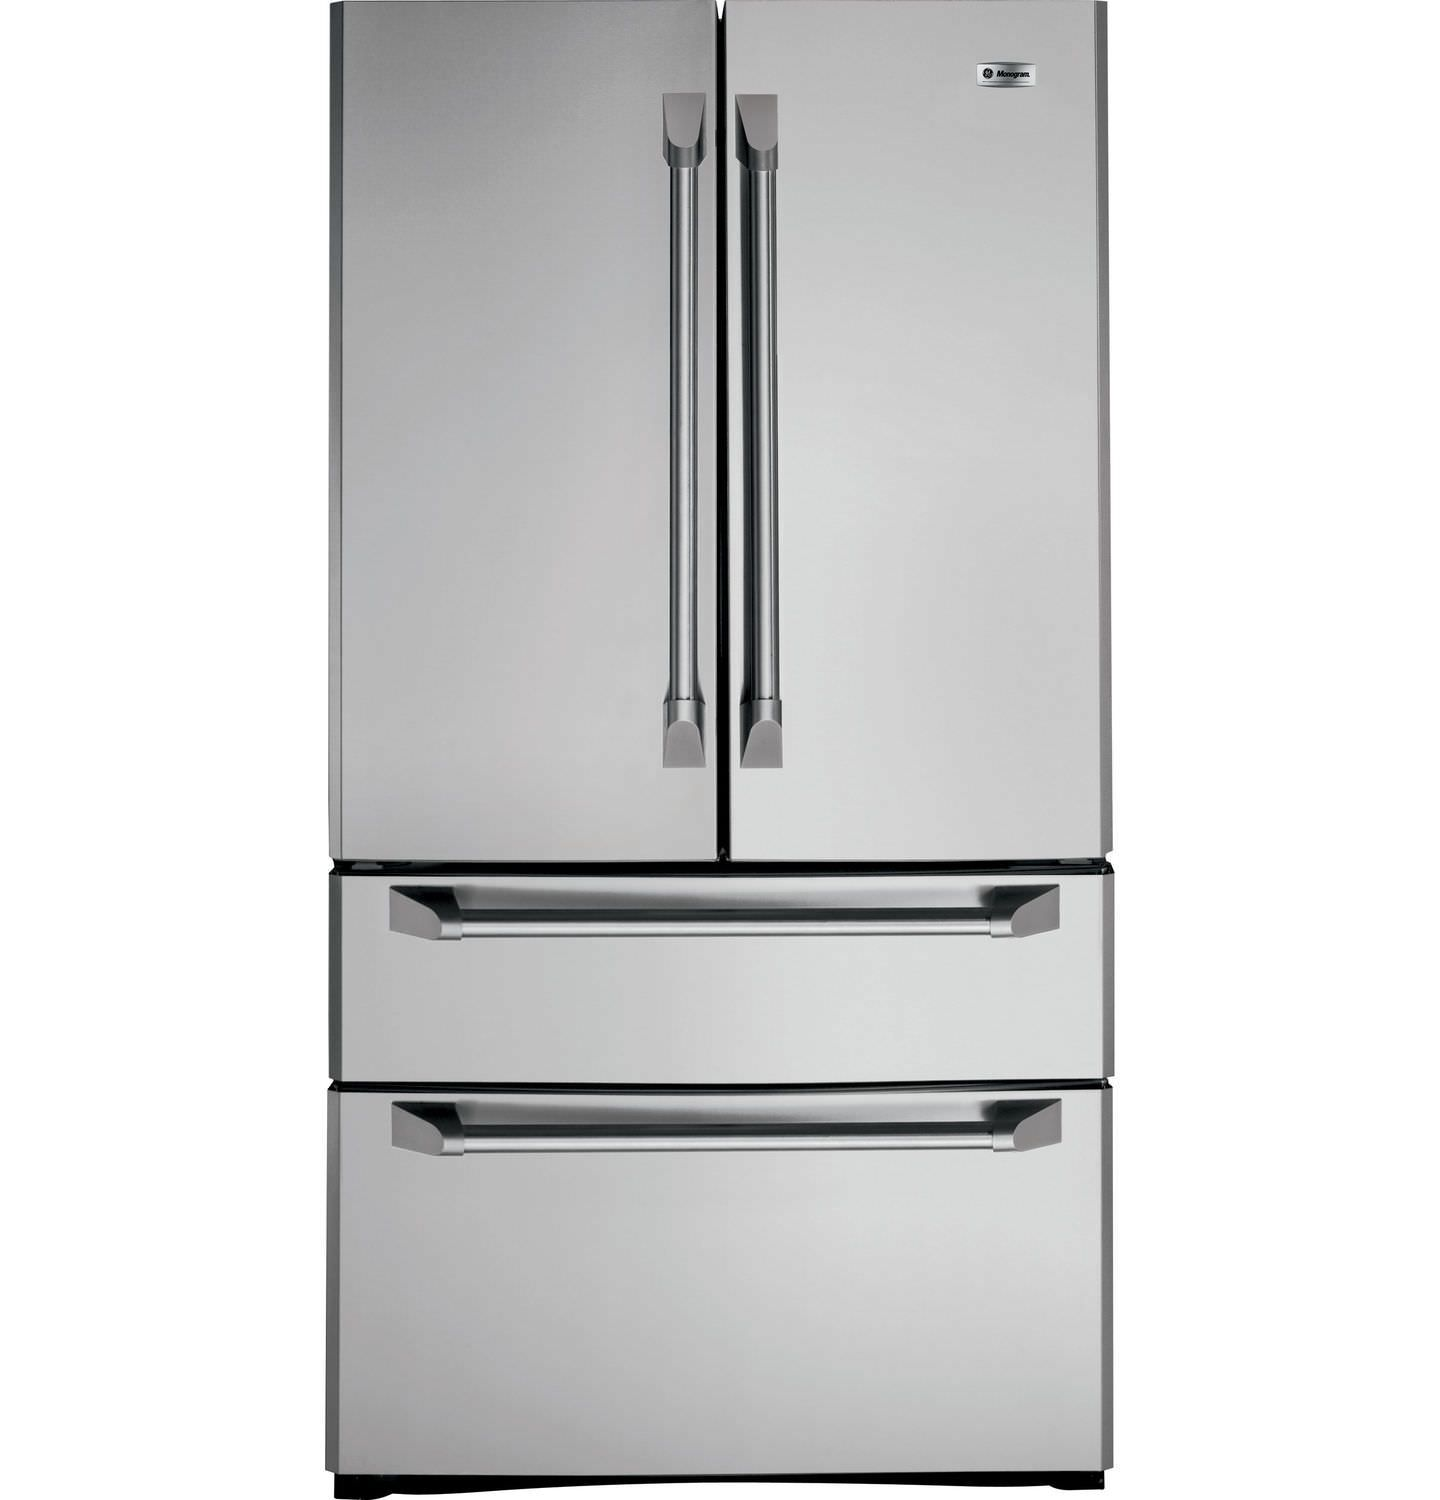 image ge ft name freezer energy cu requesttype appliance specs refrigerator drawer dispatcher gea star bottom product